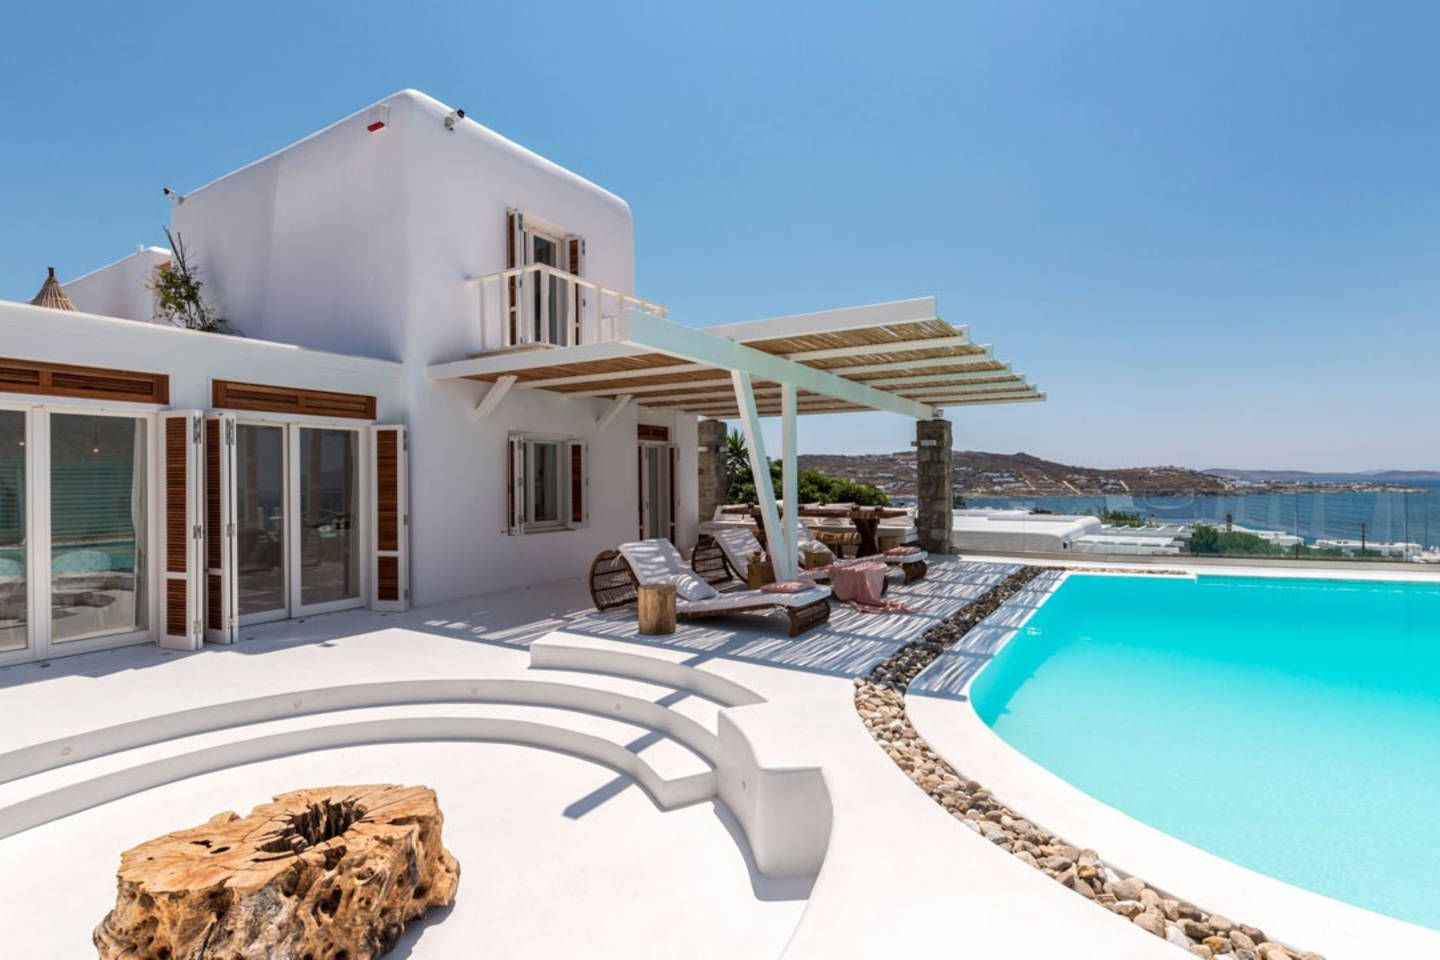 12 Airbnb Properties Ideal For A Romantic Grecian Getaway